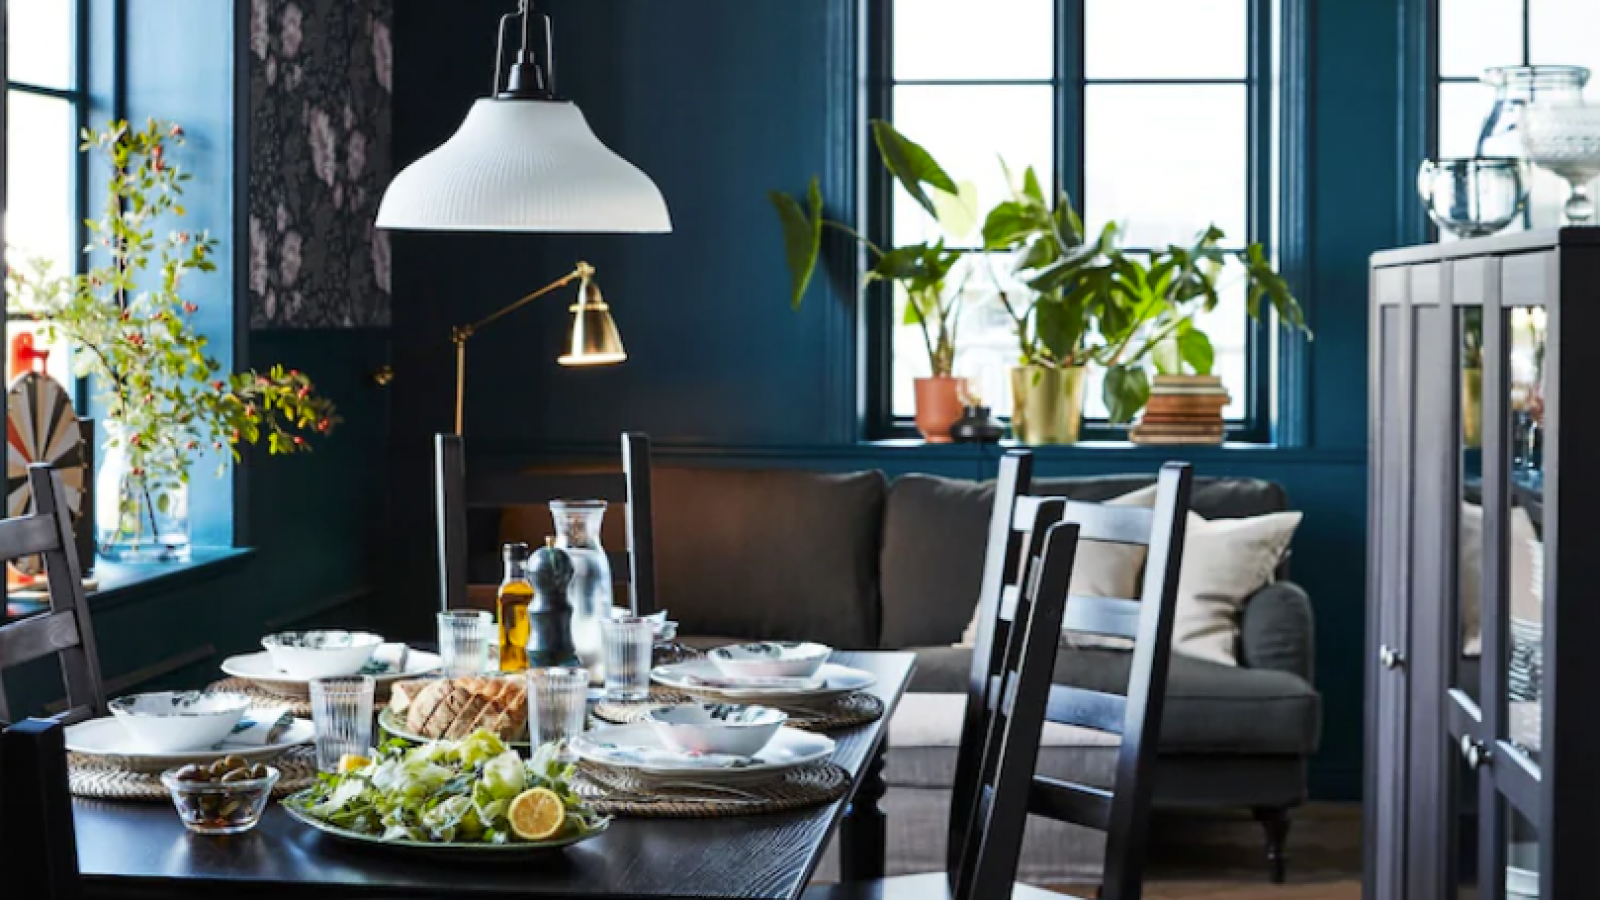 Enjoy a great family dinner in a few hopeful steps with IKEA